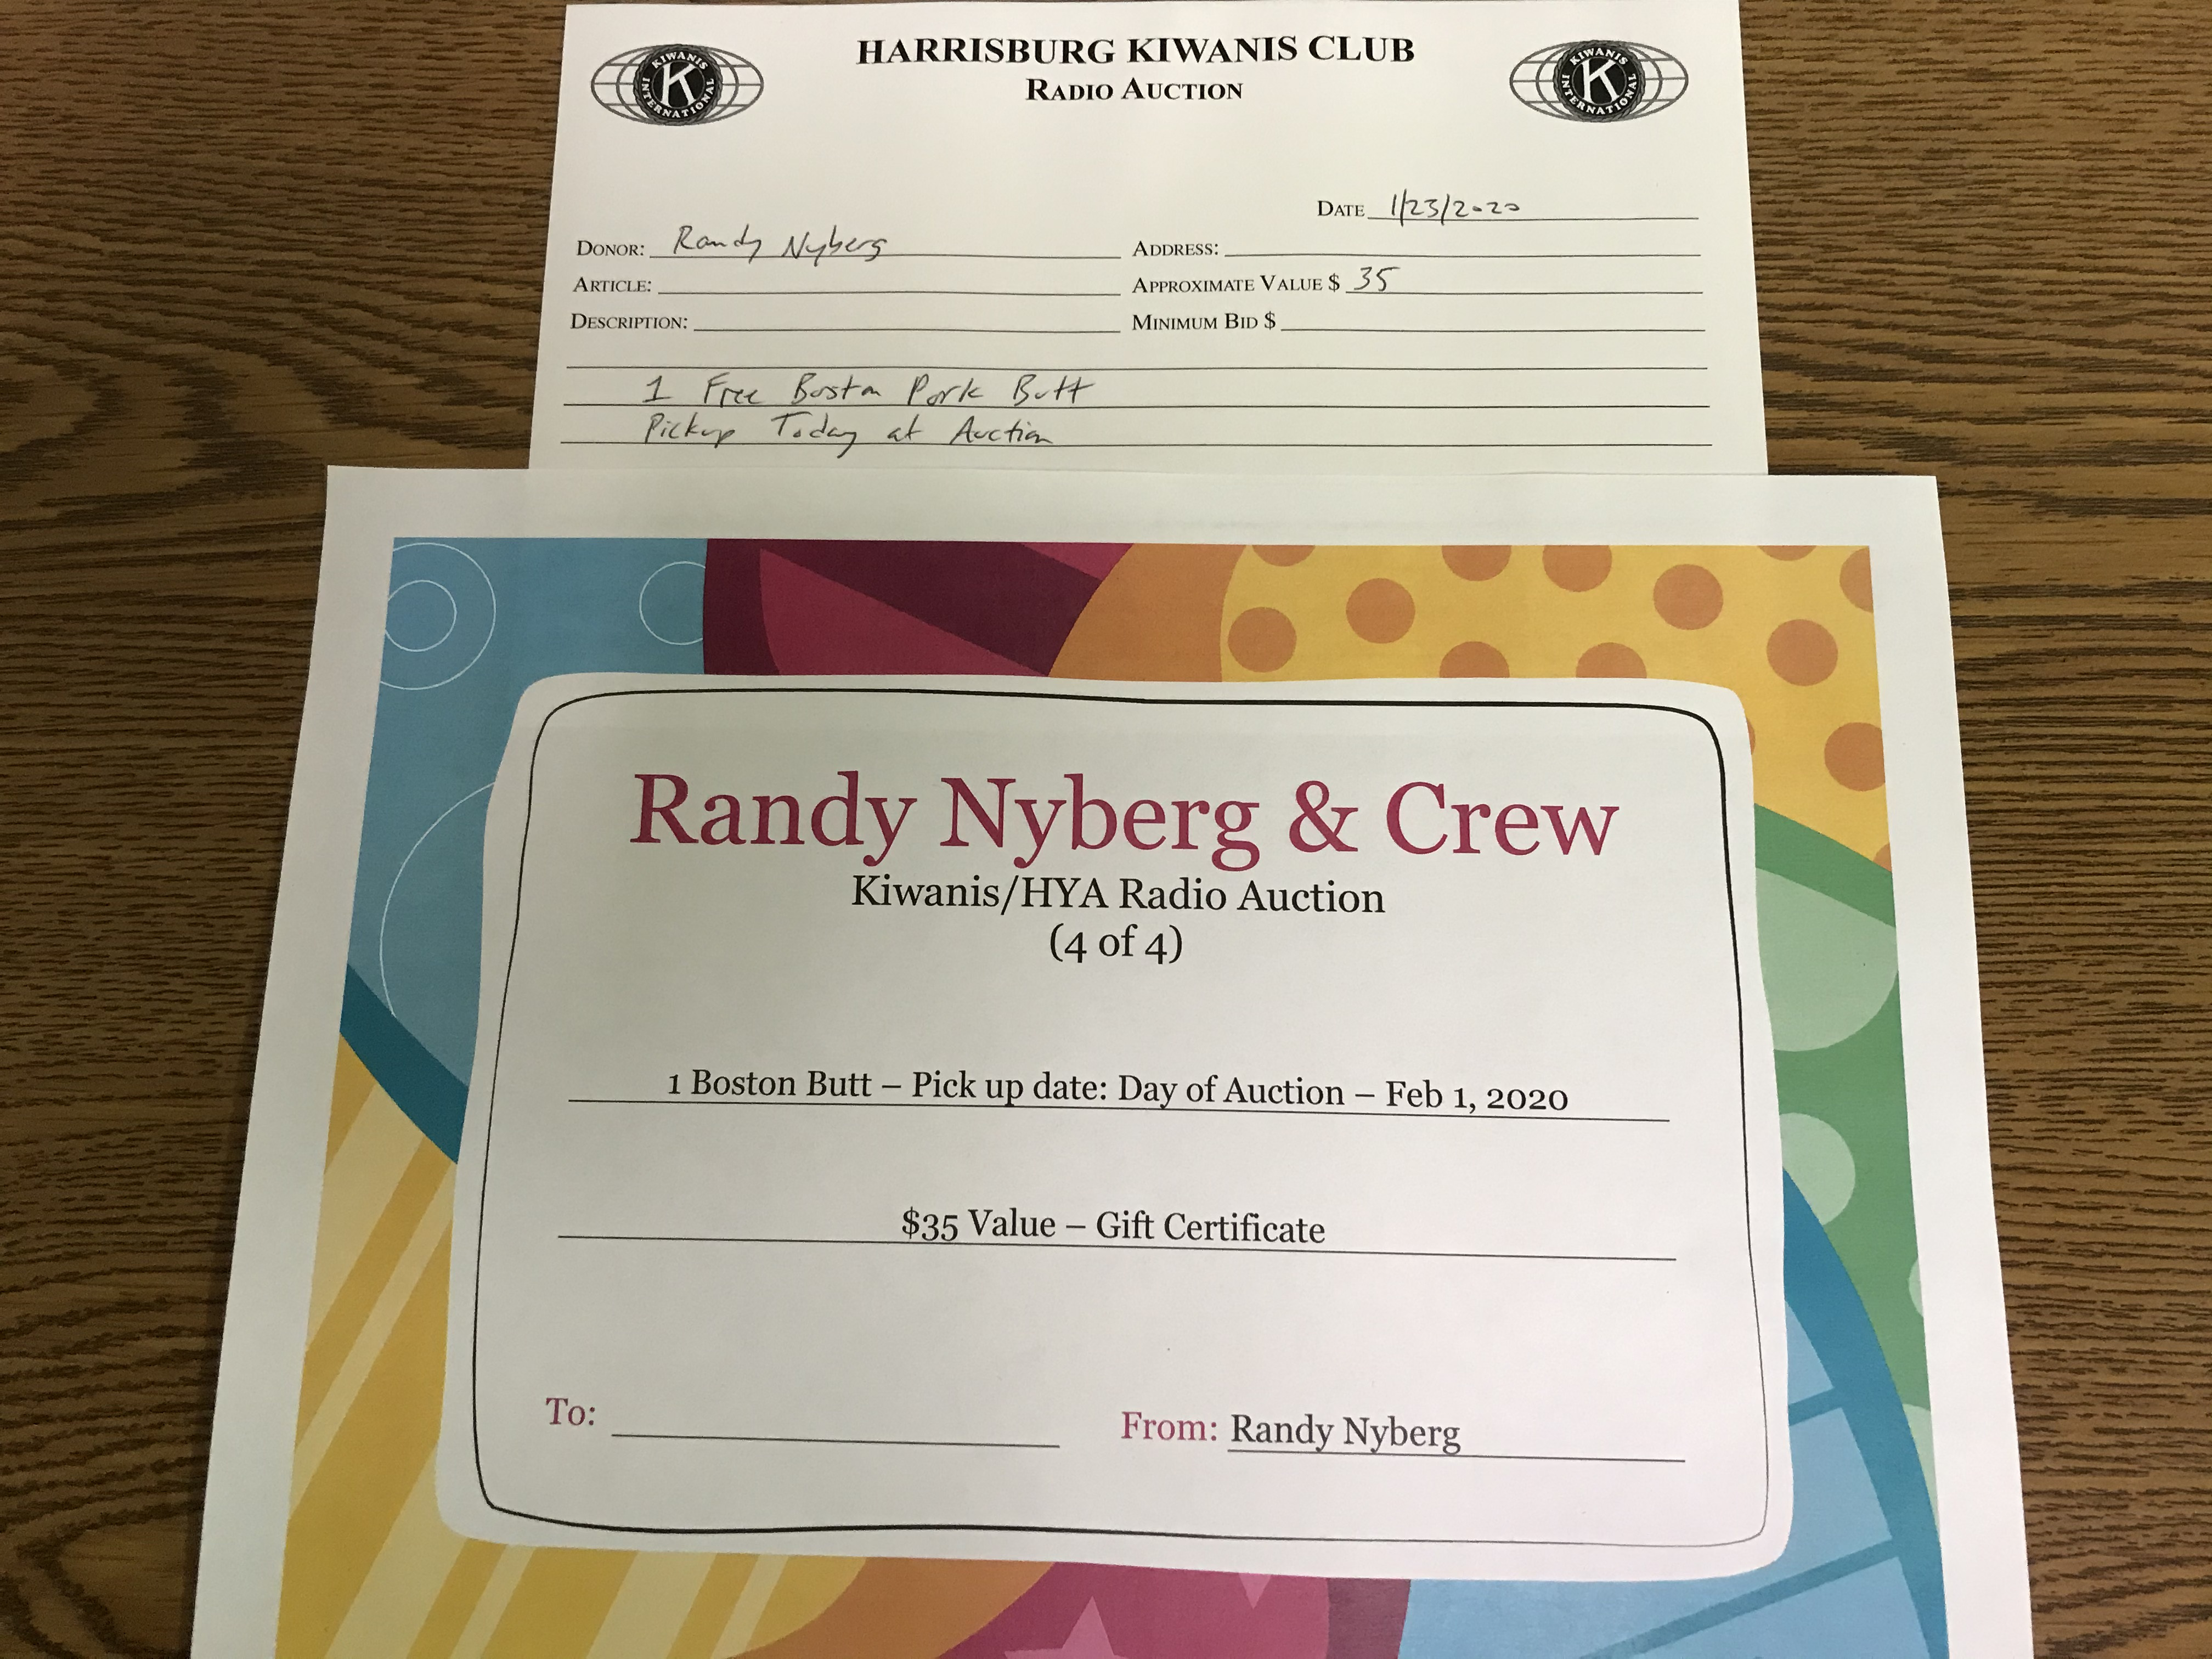 Item 430 - Randy Nyberg 1 Free Pork Butt (available for pickup the day of the Auction)